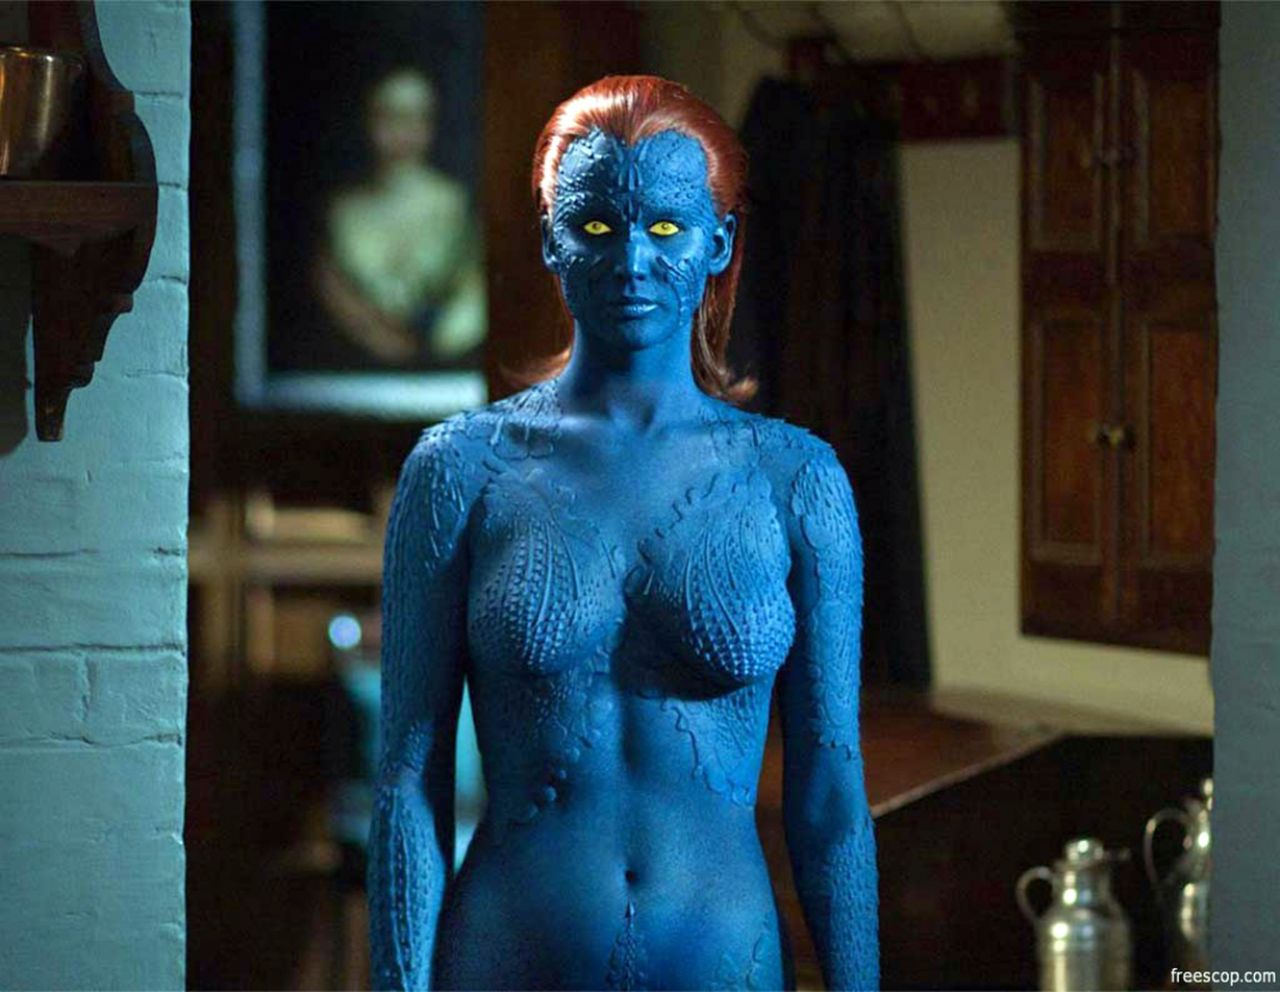 Jennifer Lawrence Mystique Outfit From X Men 2014